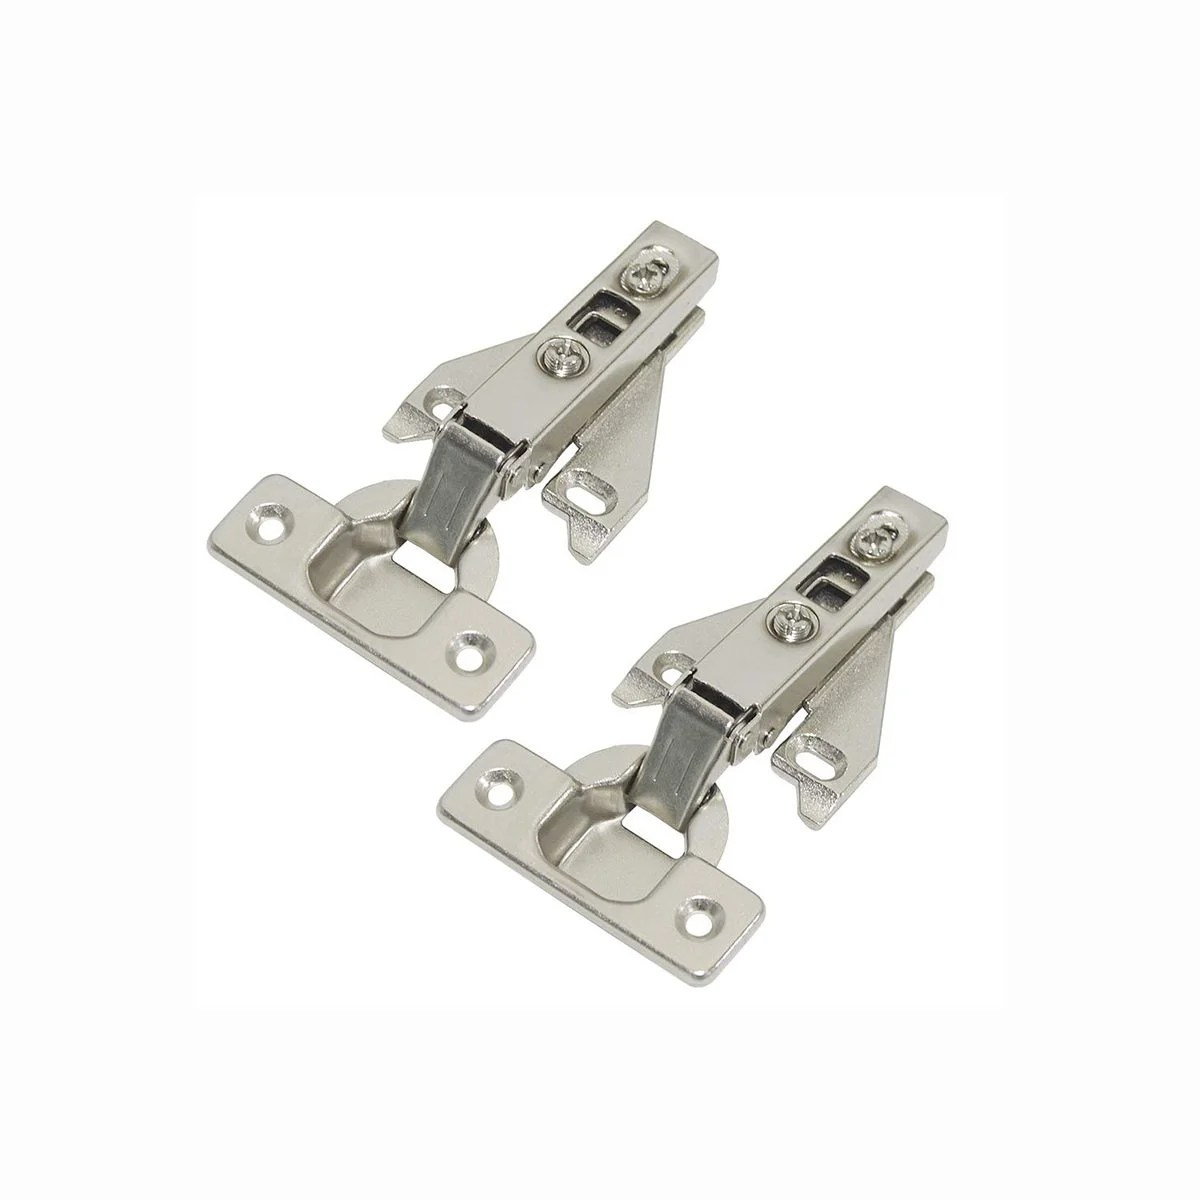 Different Hinge Types And Where To Use Them